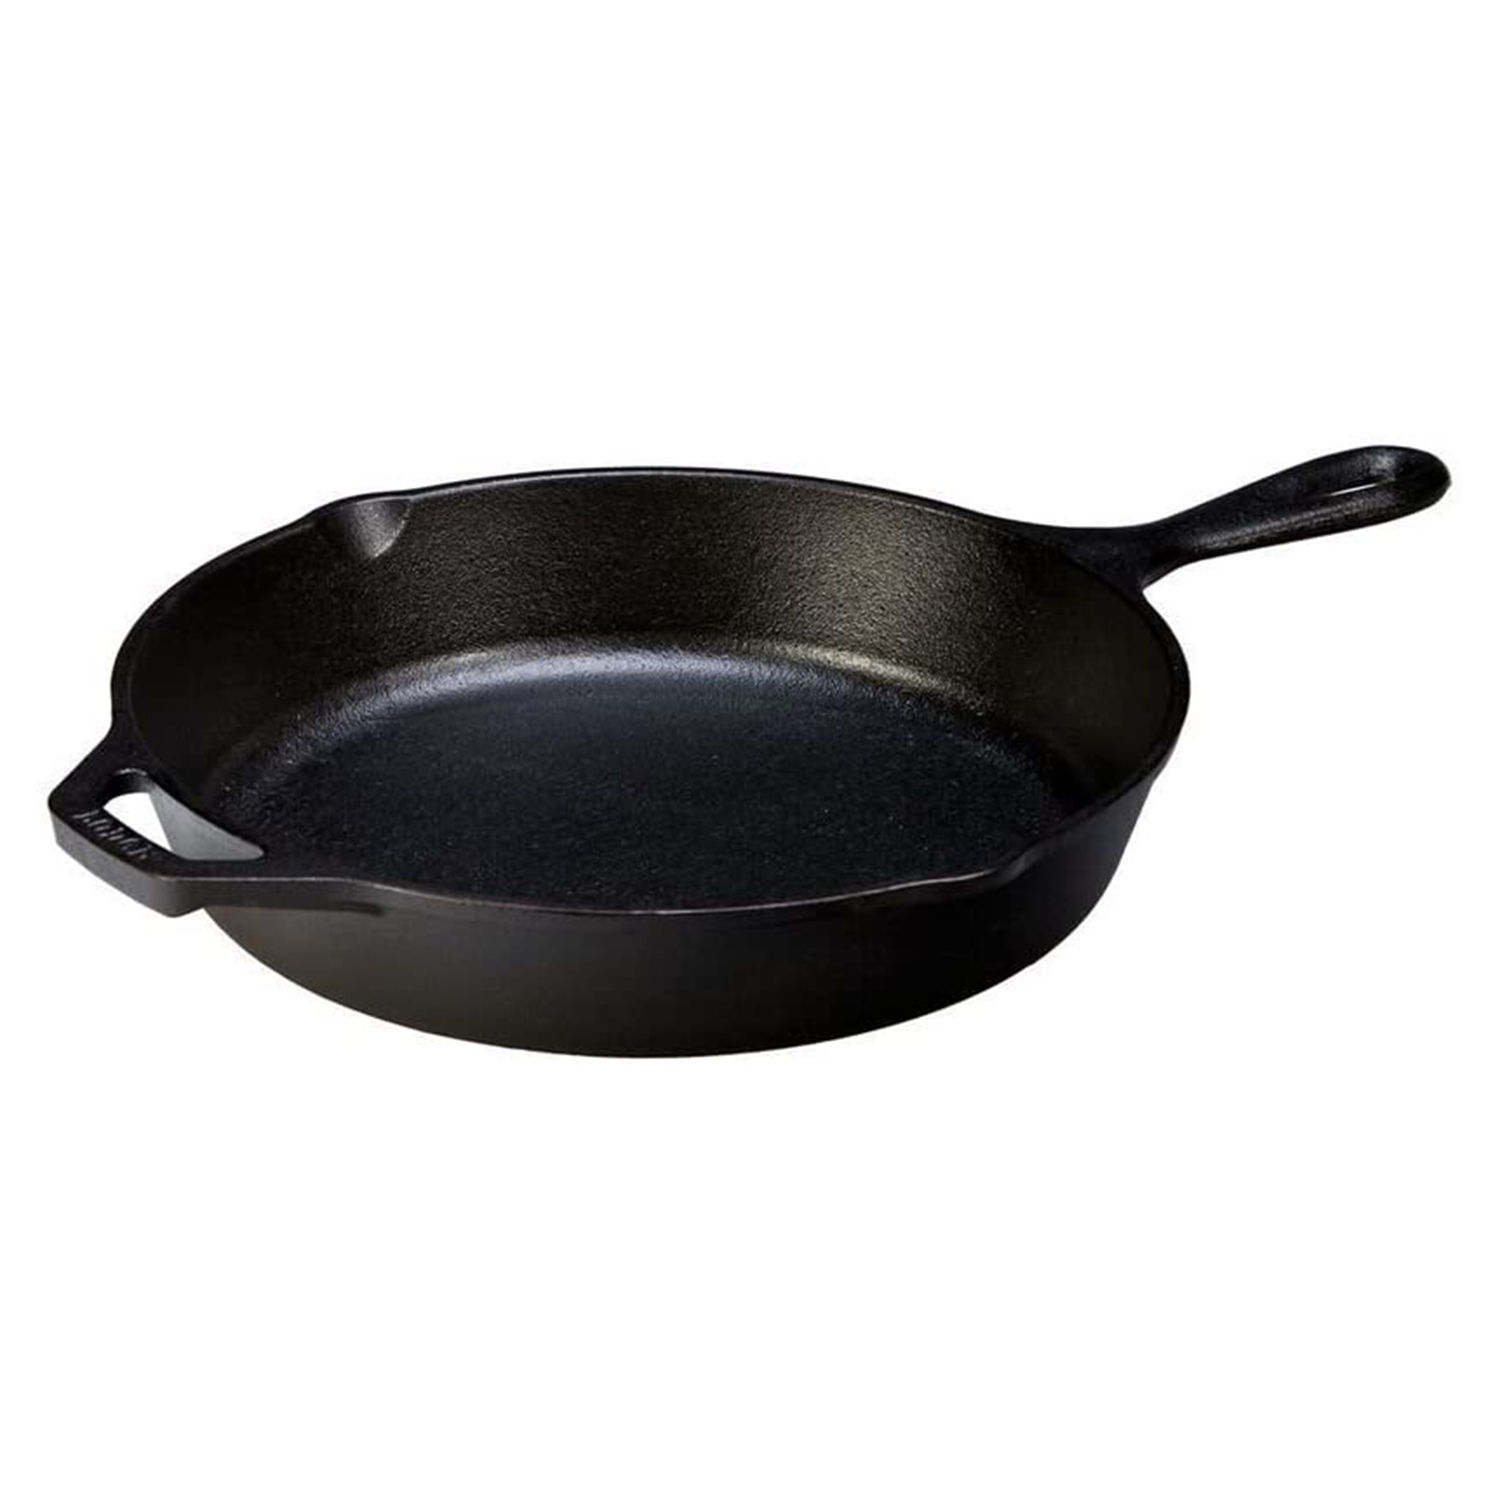 Lodge Pre-Seasoned Cast Iron Skillet With Assist Handle